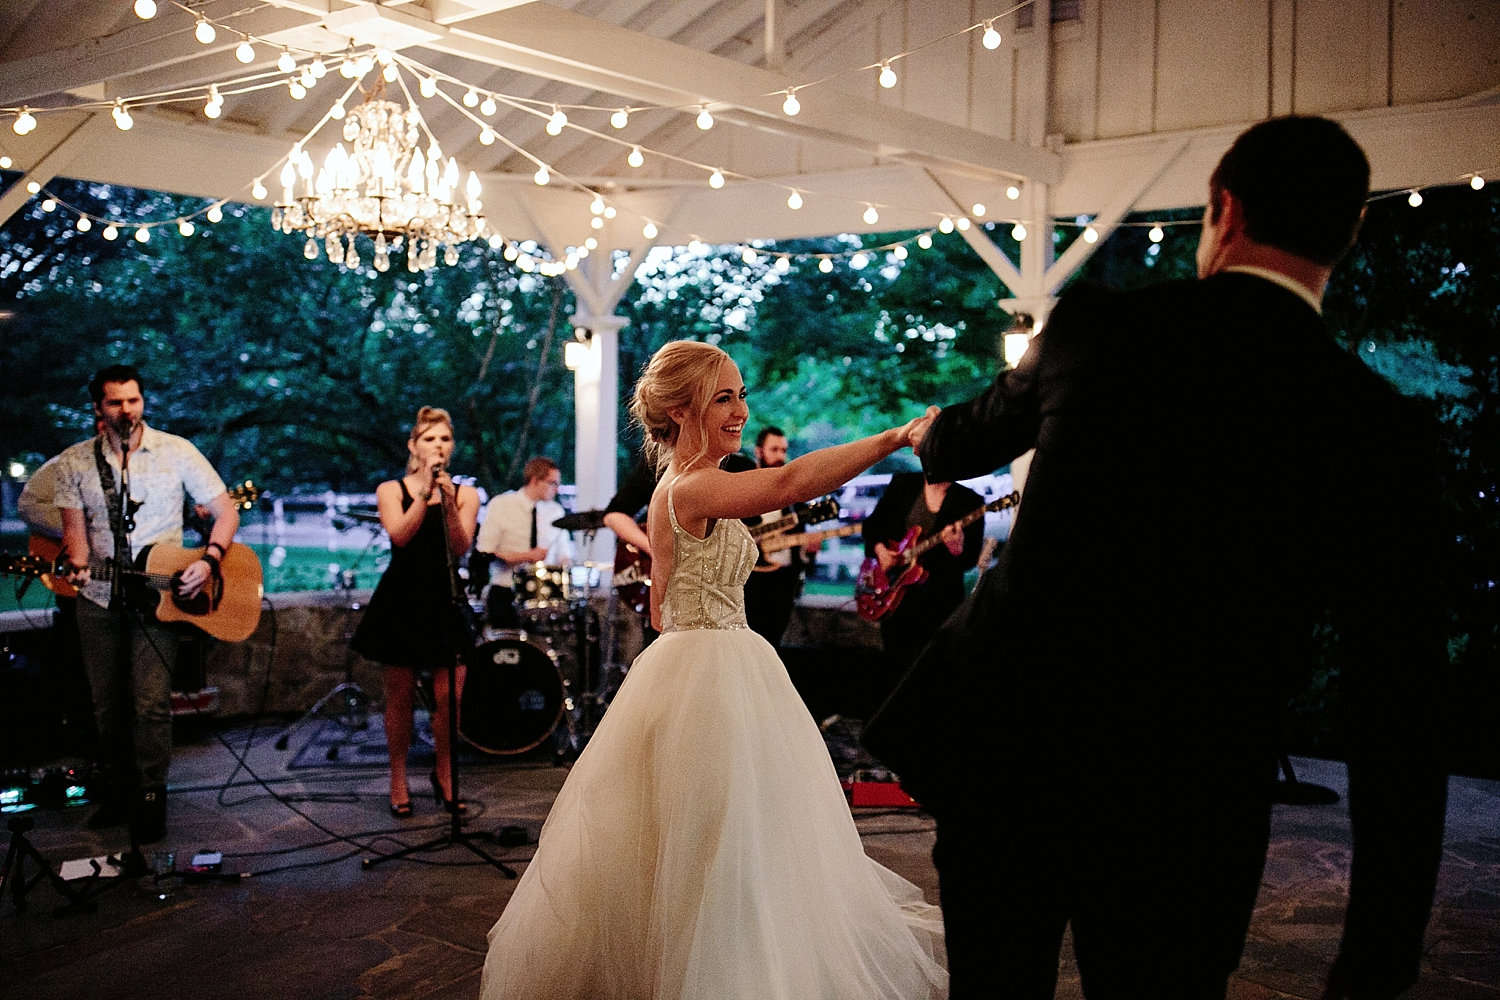 bride and groom dancing with musicians in the background